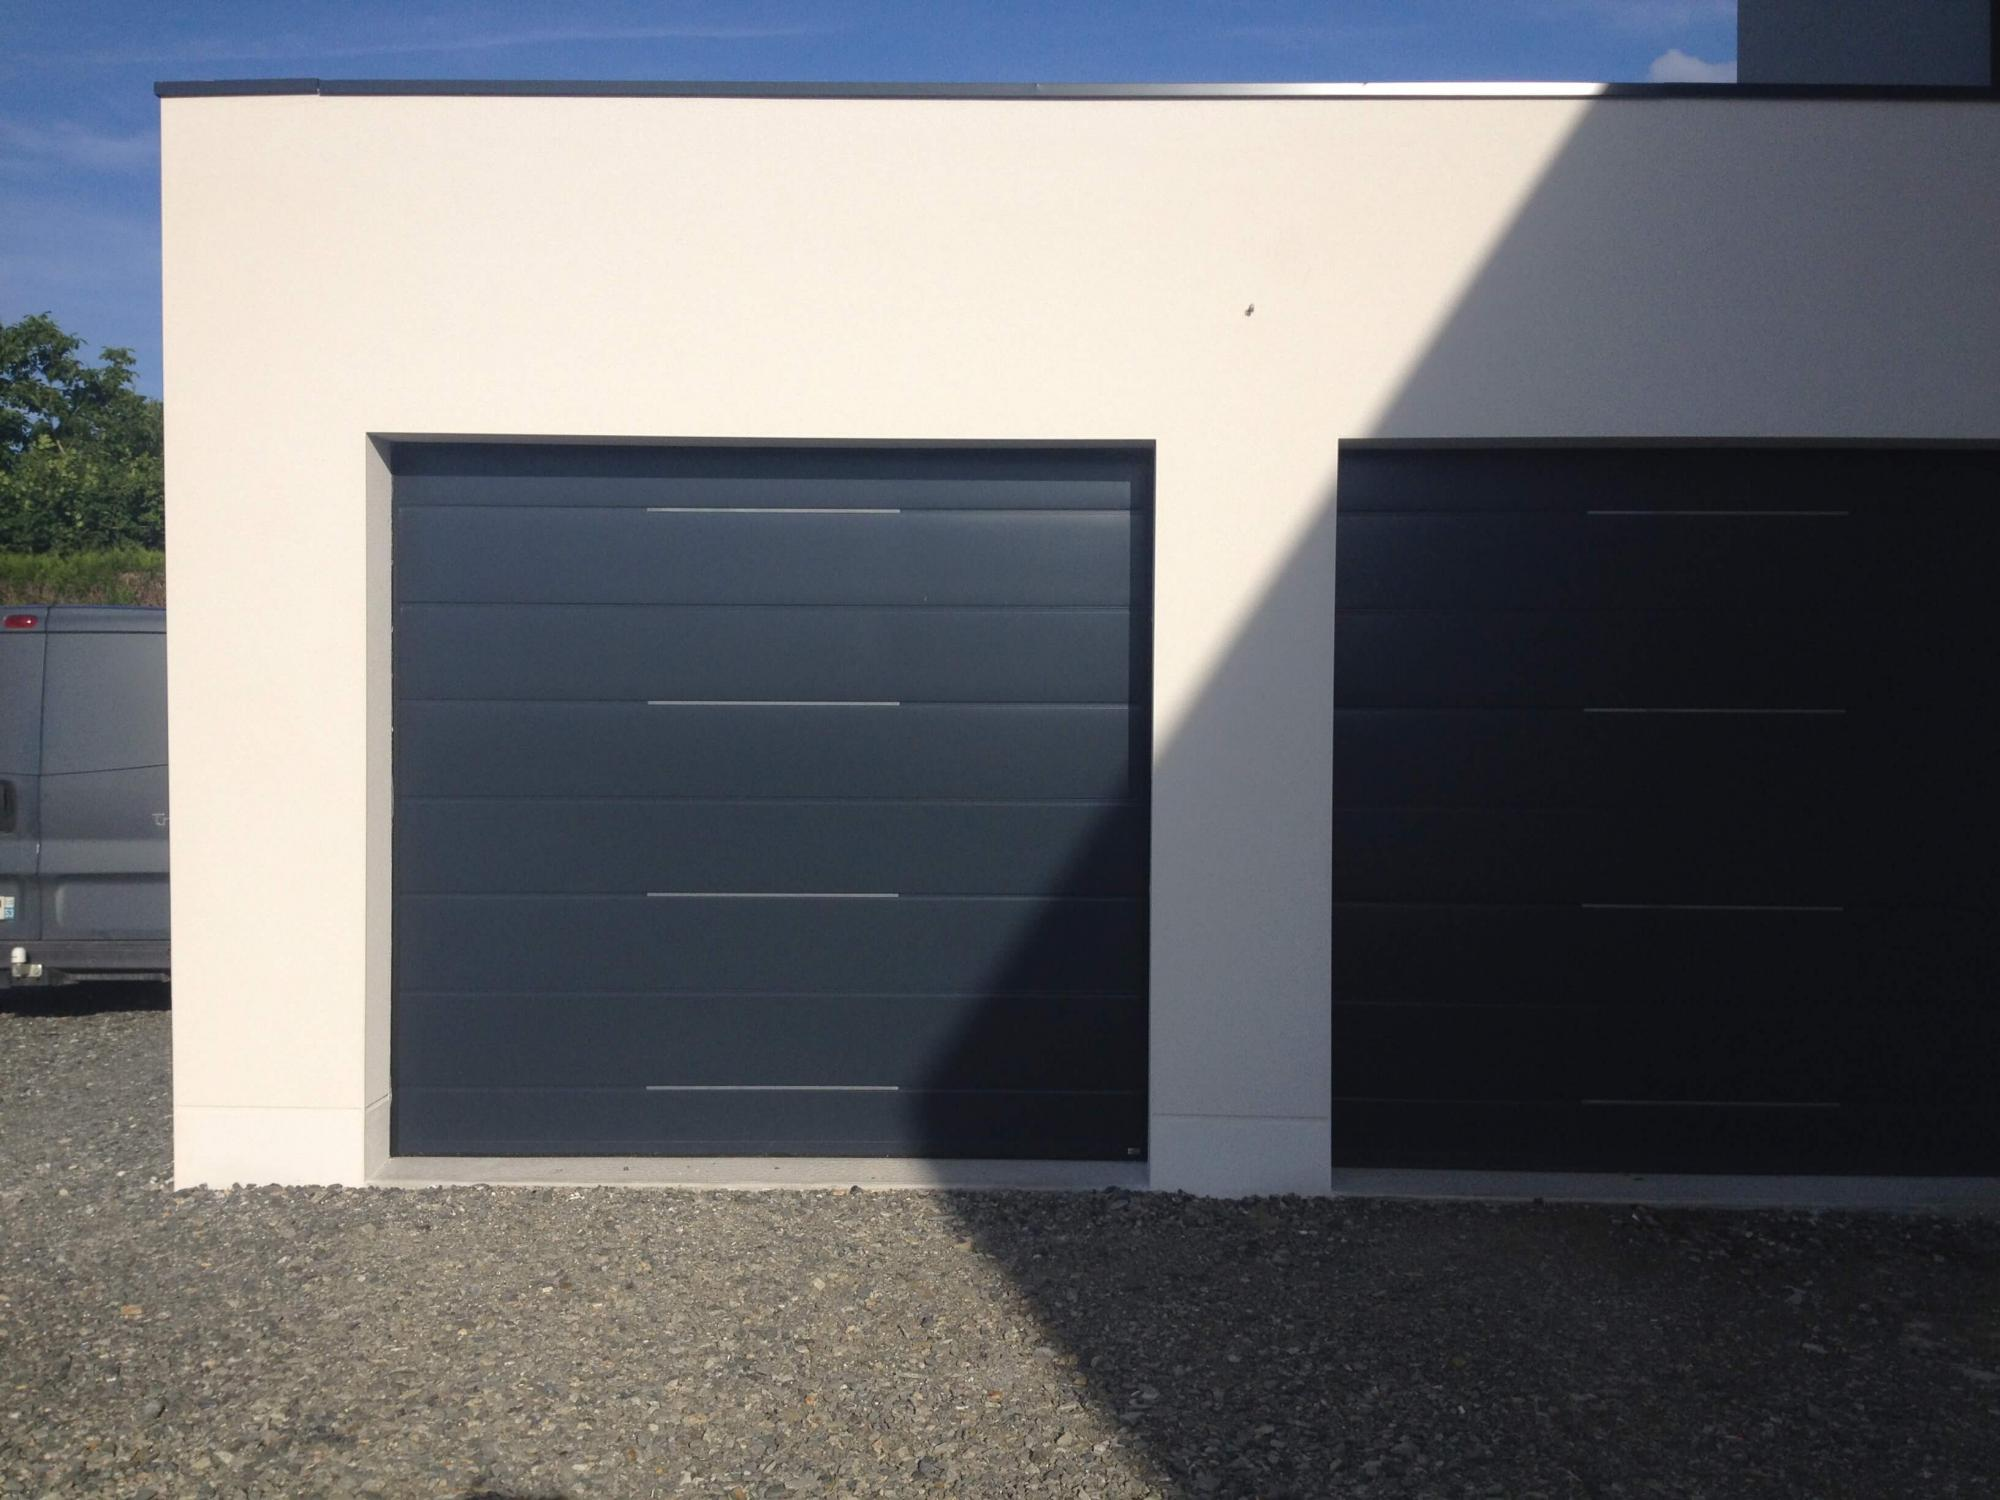 Porte de garage sectionnelle gris anthracite r alisation de la menuiserie solabaie craon - Porte de garage sectionnelle gris anthracite ...